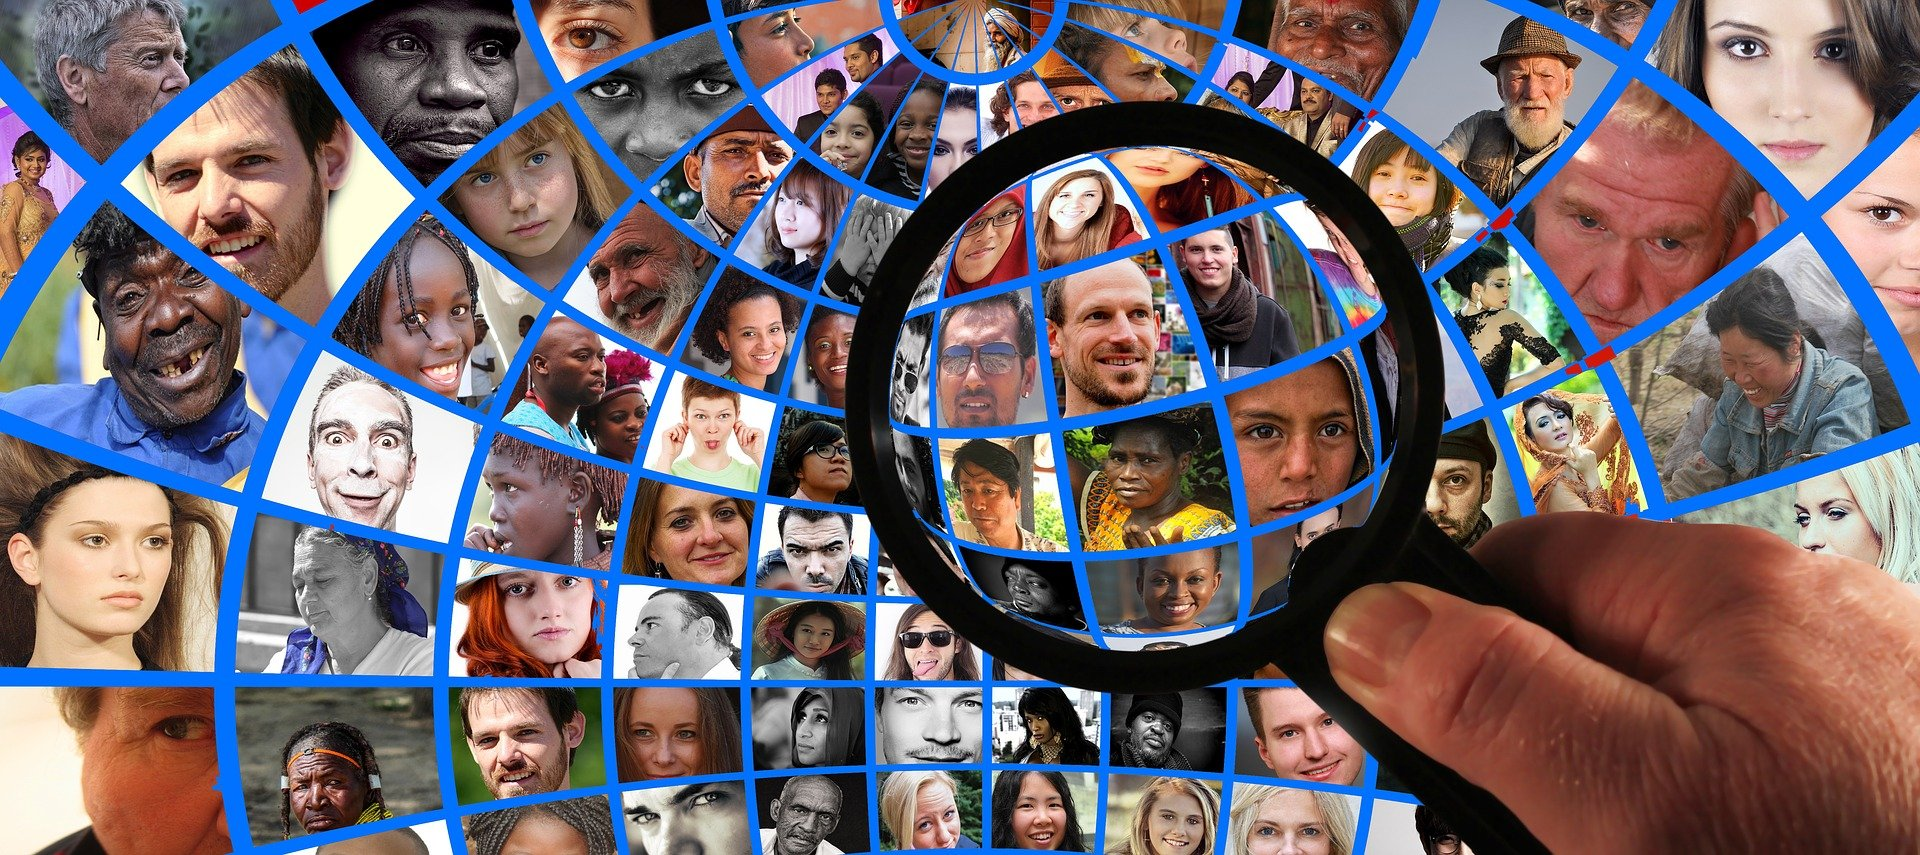 Magnifying glass hovering over a collage of many people